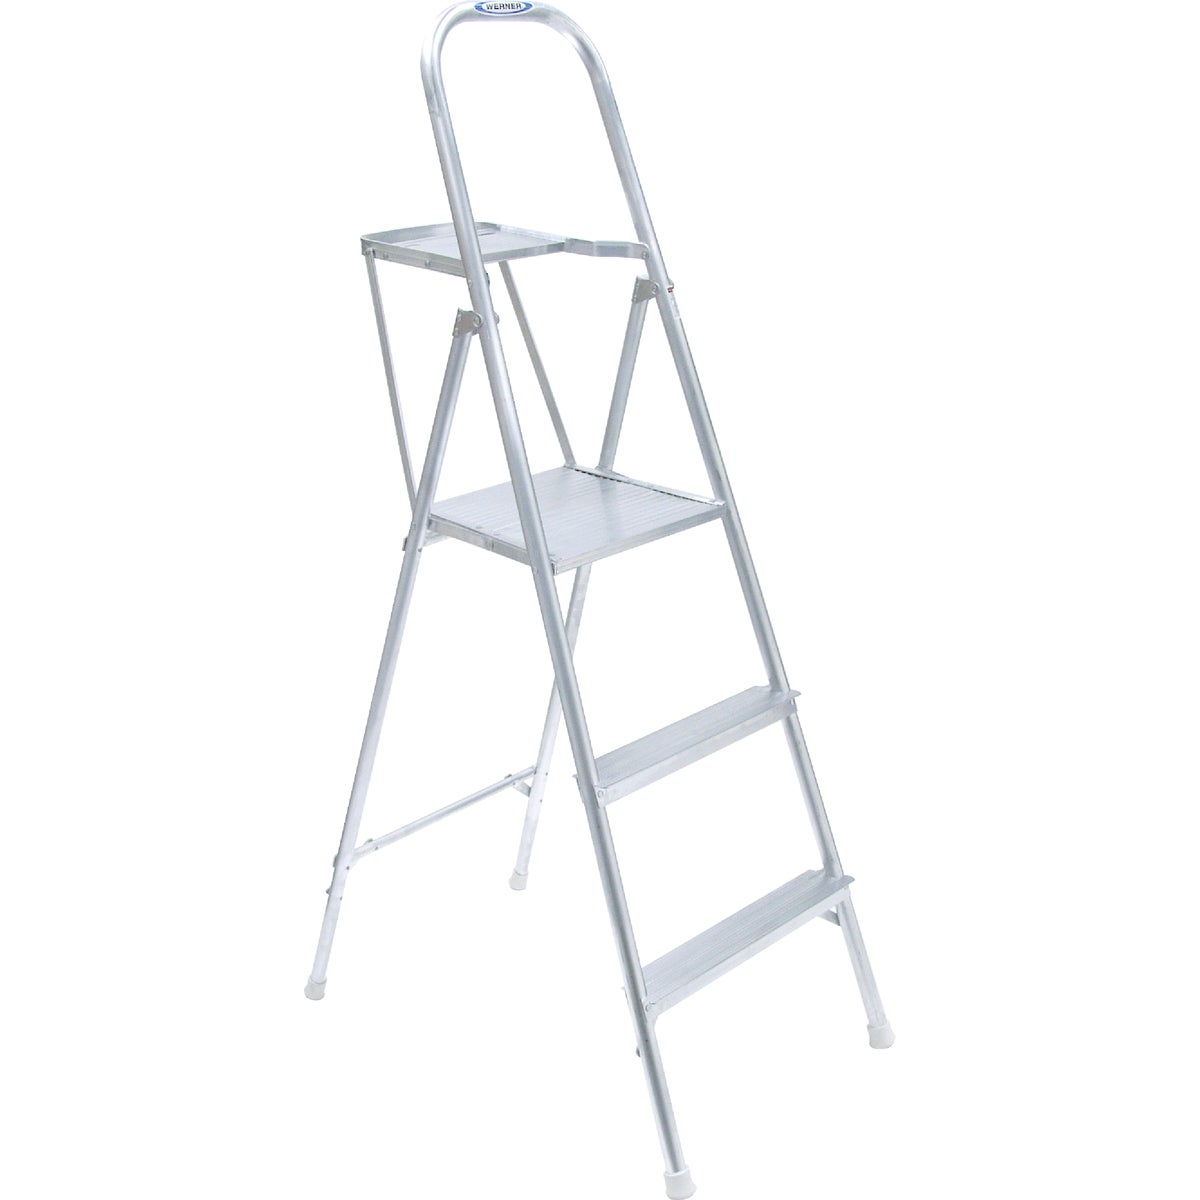 T-3 5.5' ALUM STEPLADDER - 265 by Werner Ladder